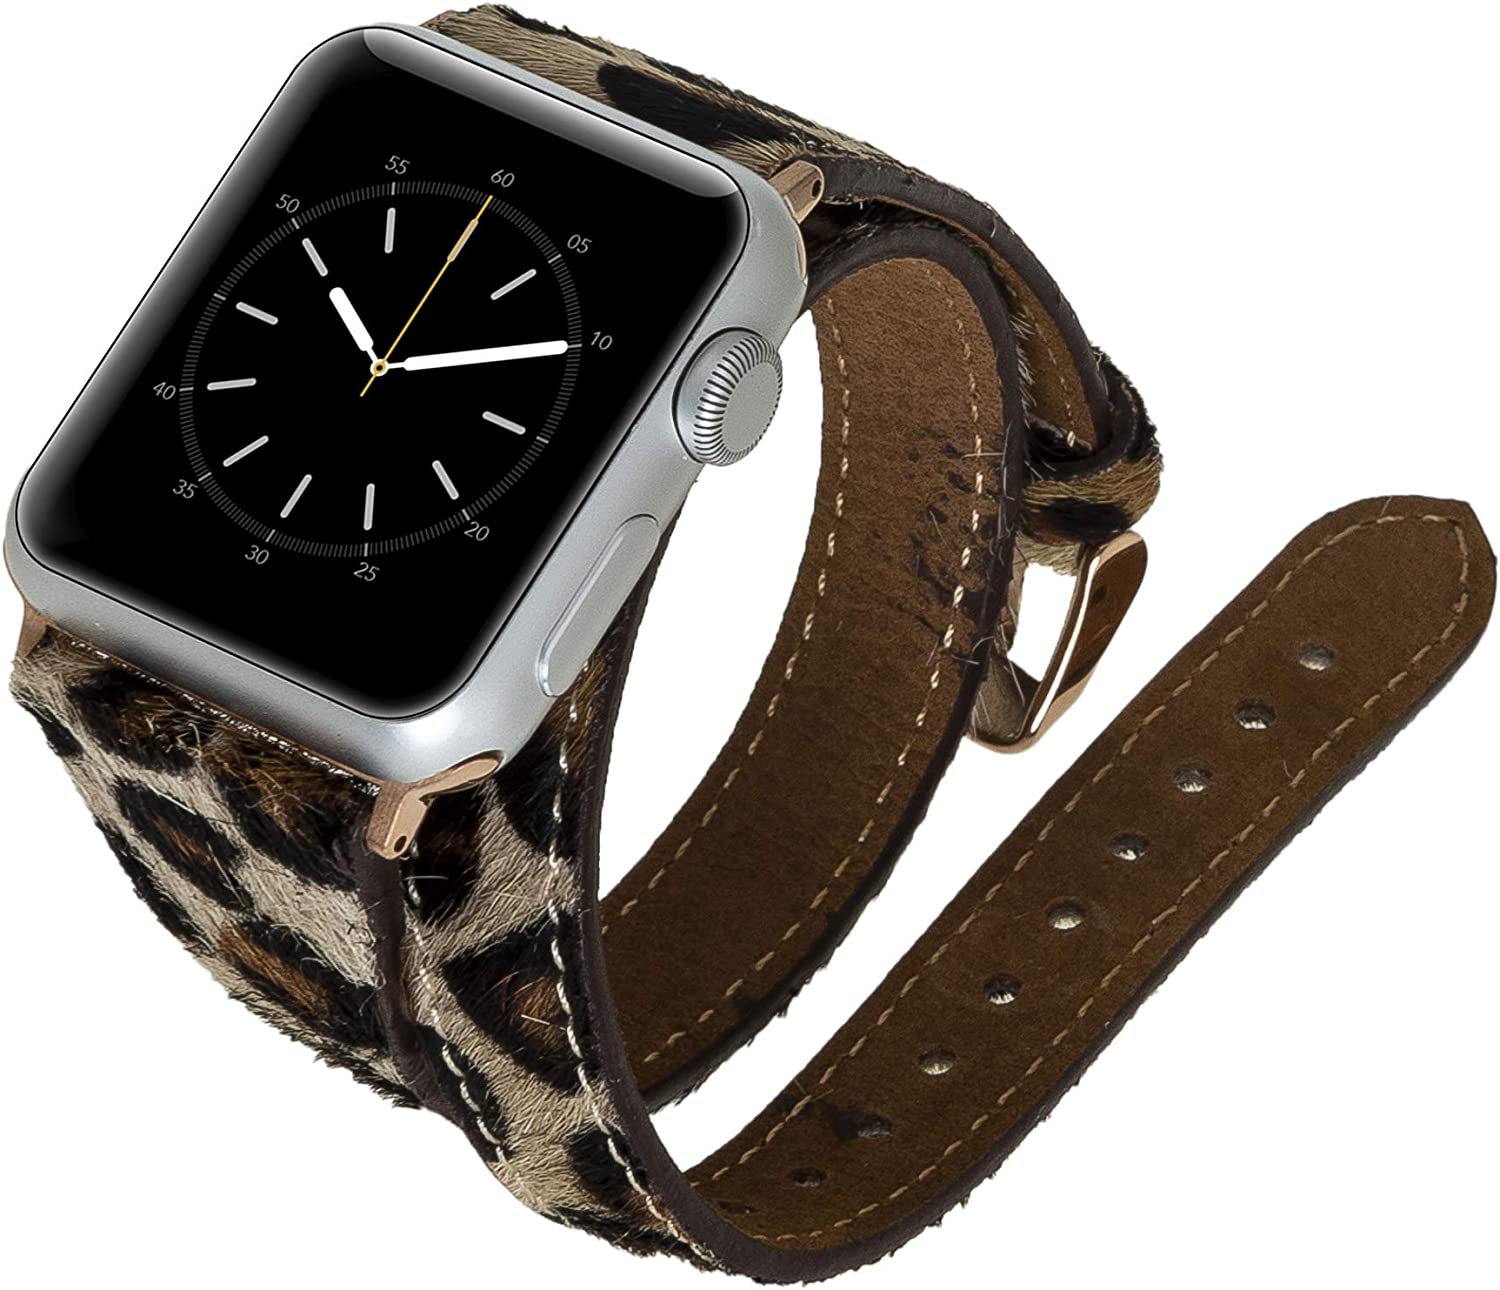 Venito Serena Slim Double Wrap Leather Watch Band Compatible with The Newest Apple Watch iwatch Series 6 as Well as Series 1,2,3,4,5 (Furry Leopard w/Rose Gold Stainless Steel Hardware, 38mm-40mm)